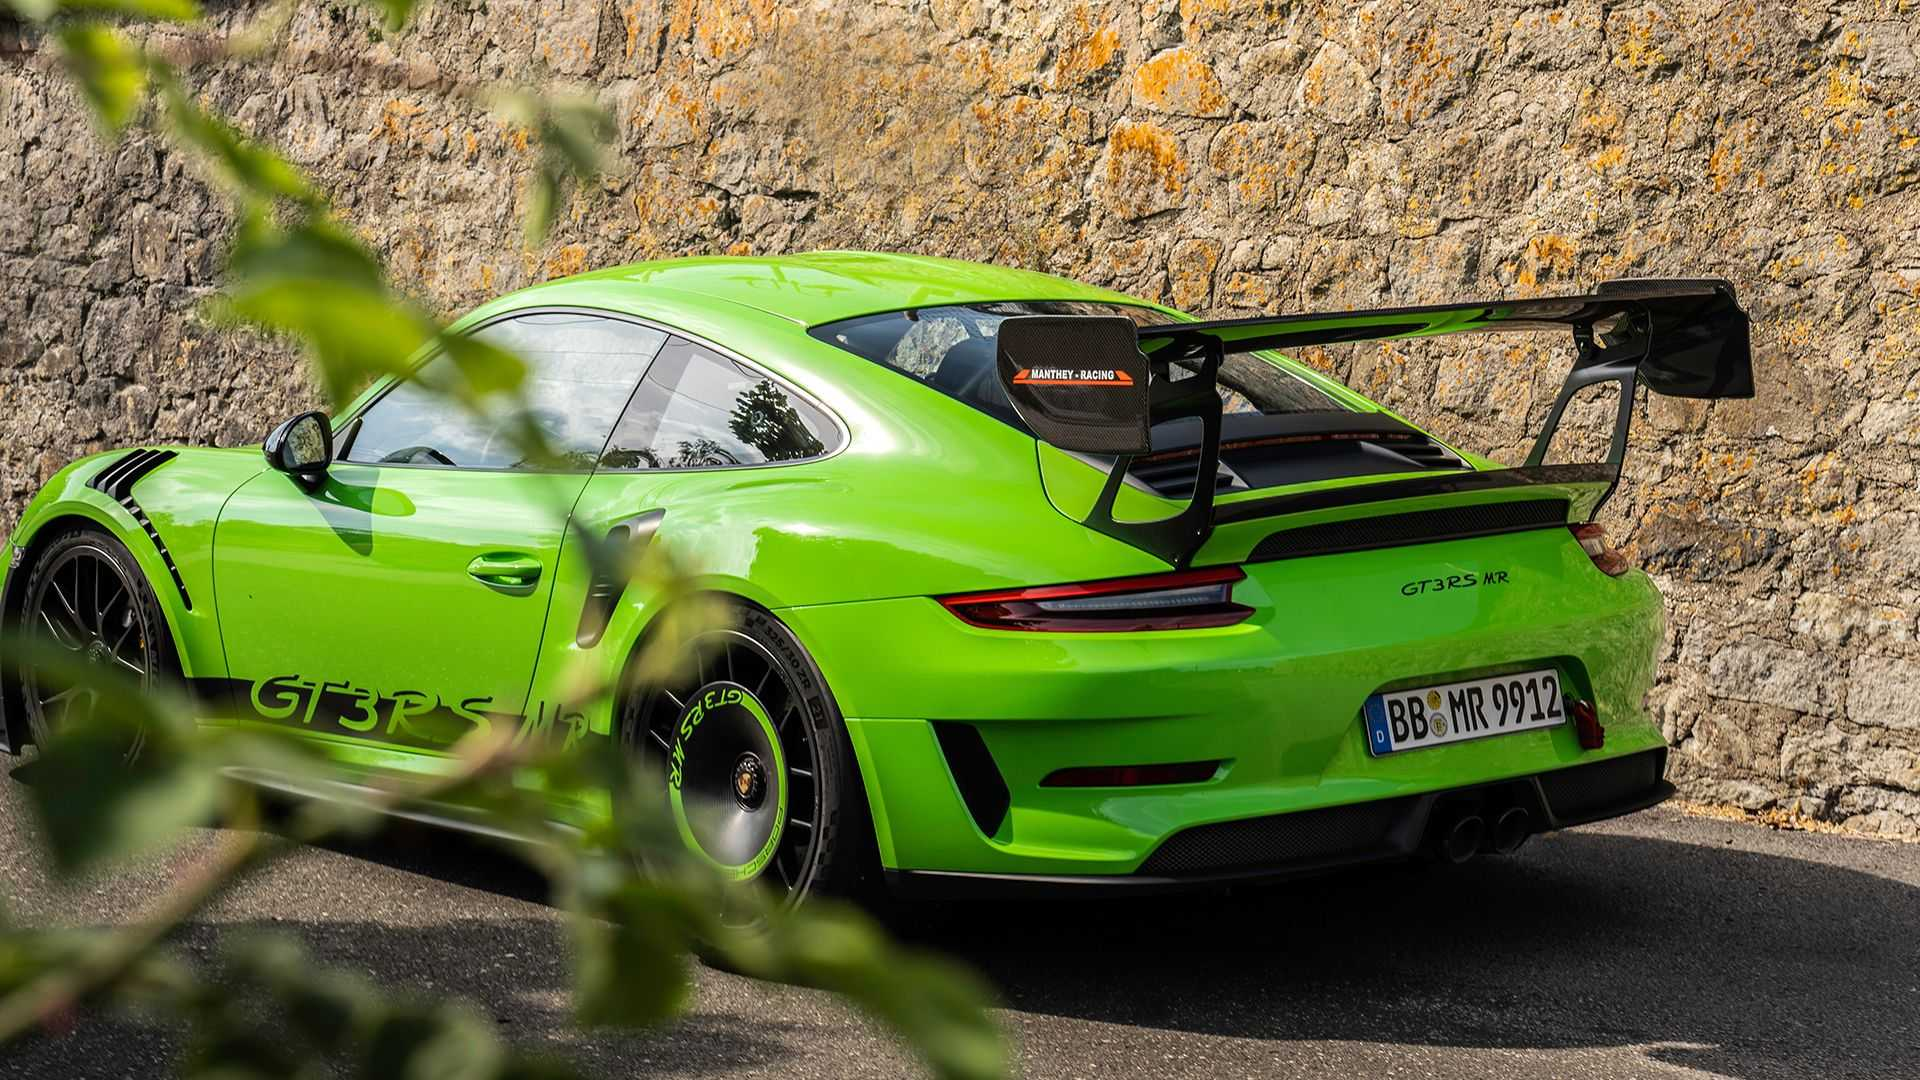 Porsche-911-GT3-RS-by-Manthey-Racing-6